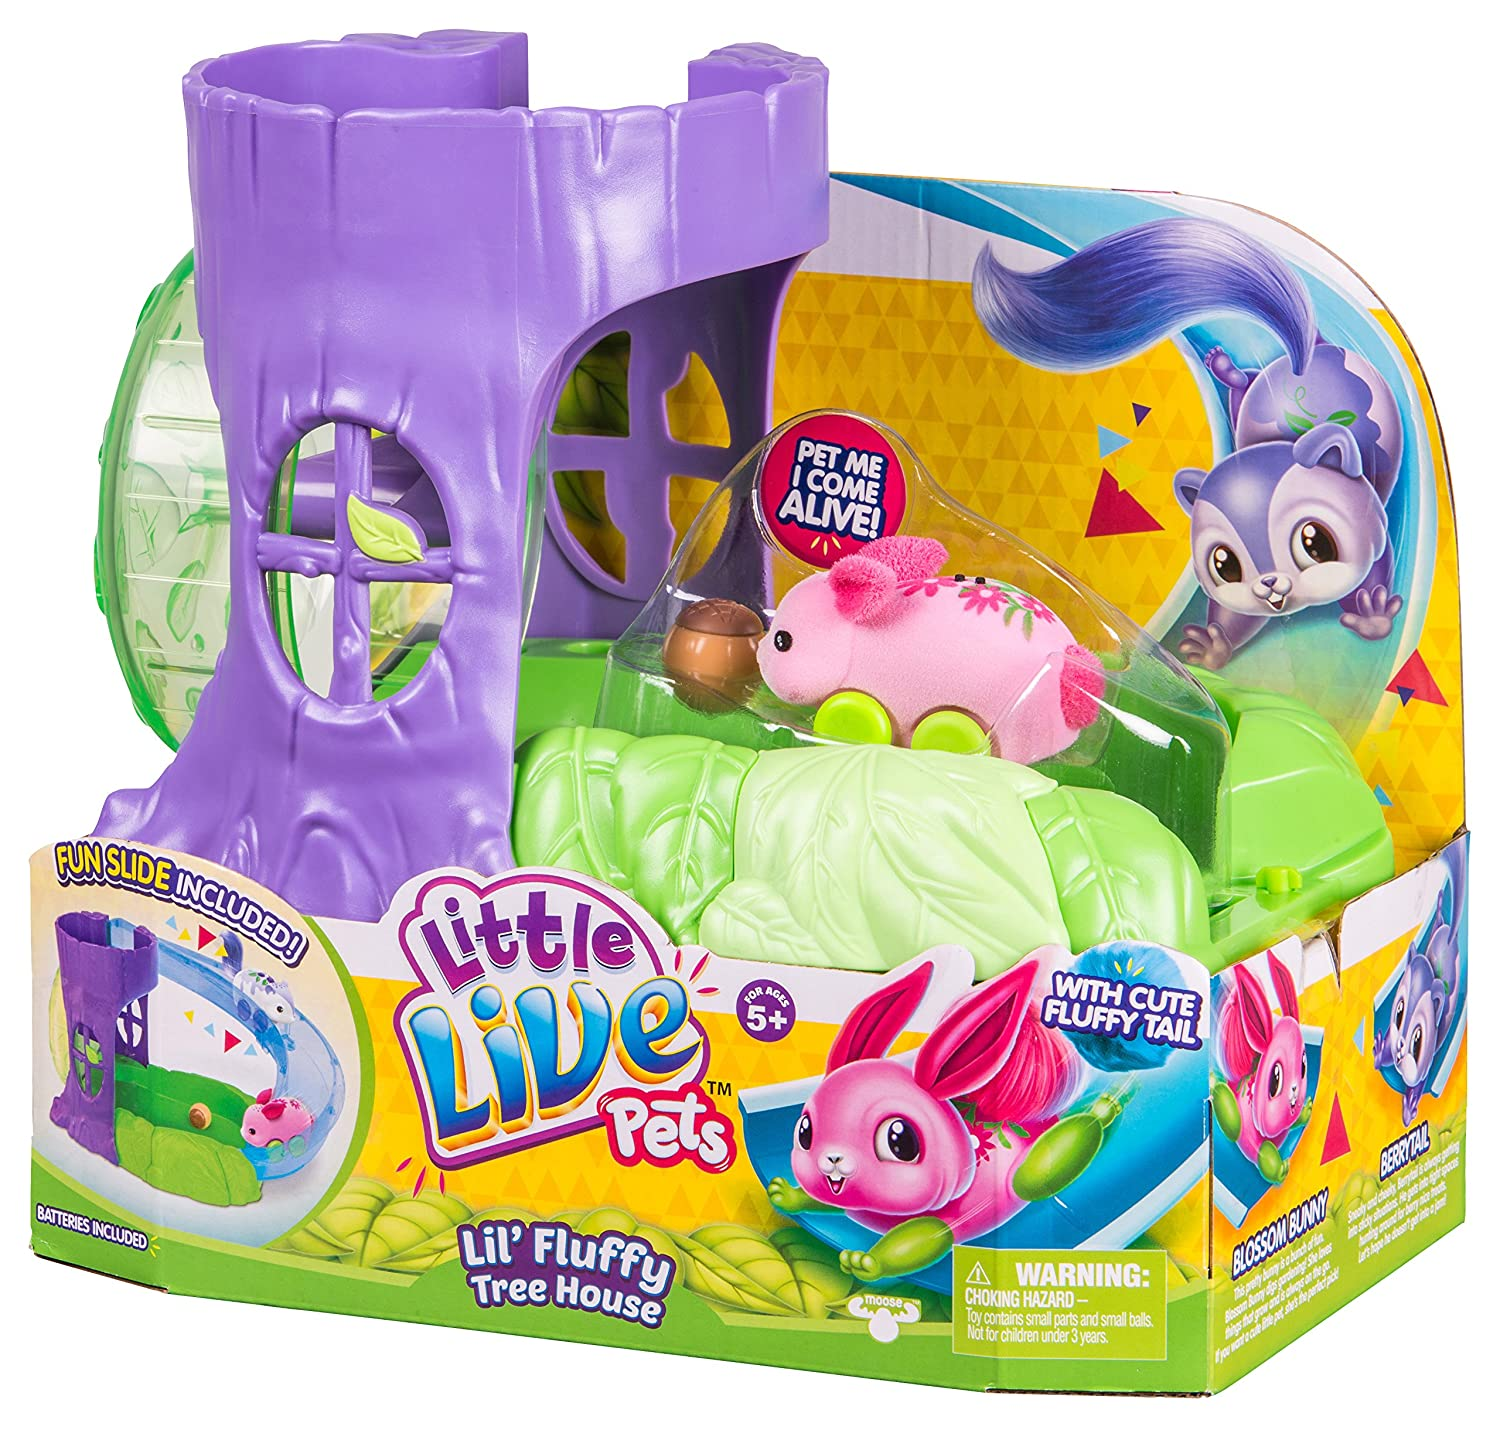 Little Little Little Live Pets 34531 Series 1 Fluffy Friends Hp-Blossom Bunny bf8d66